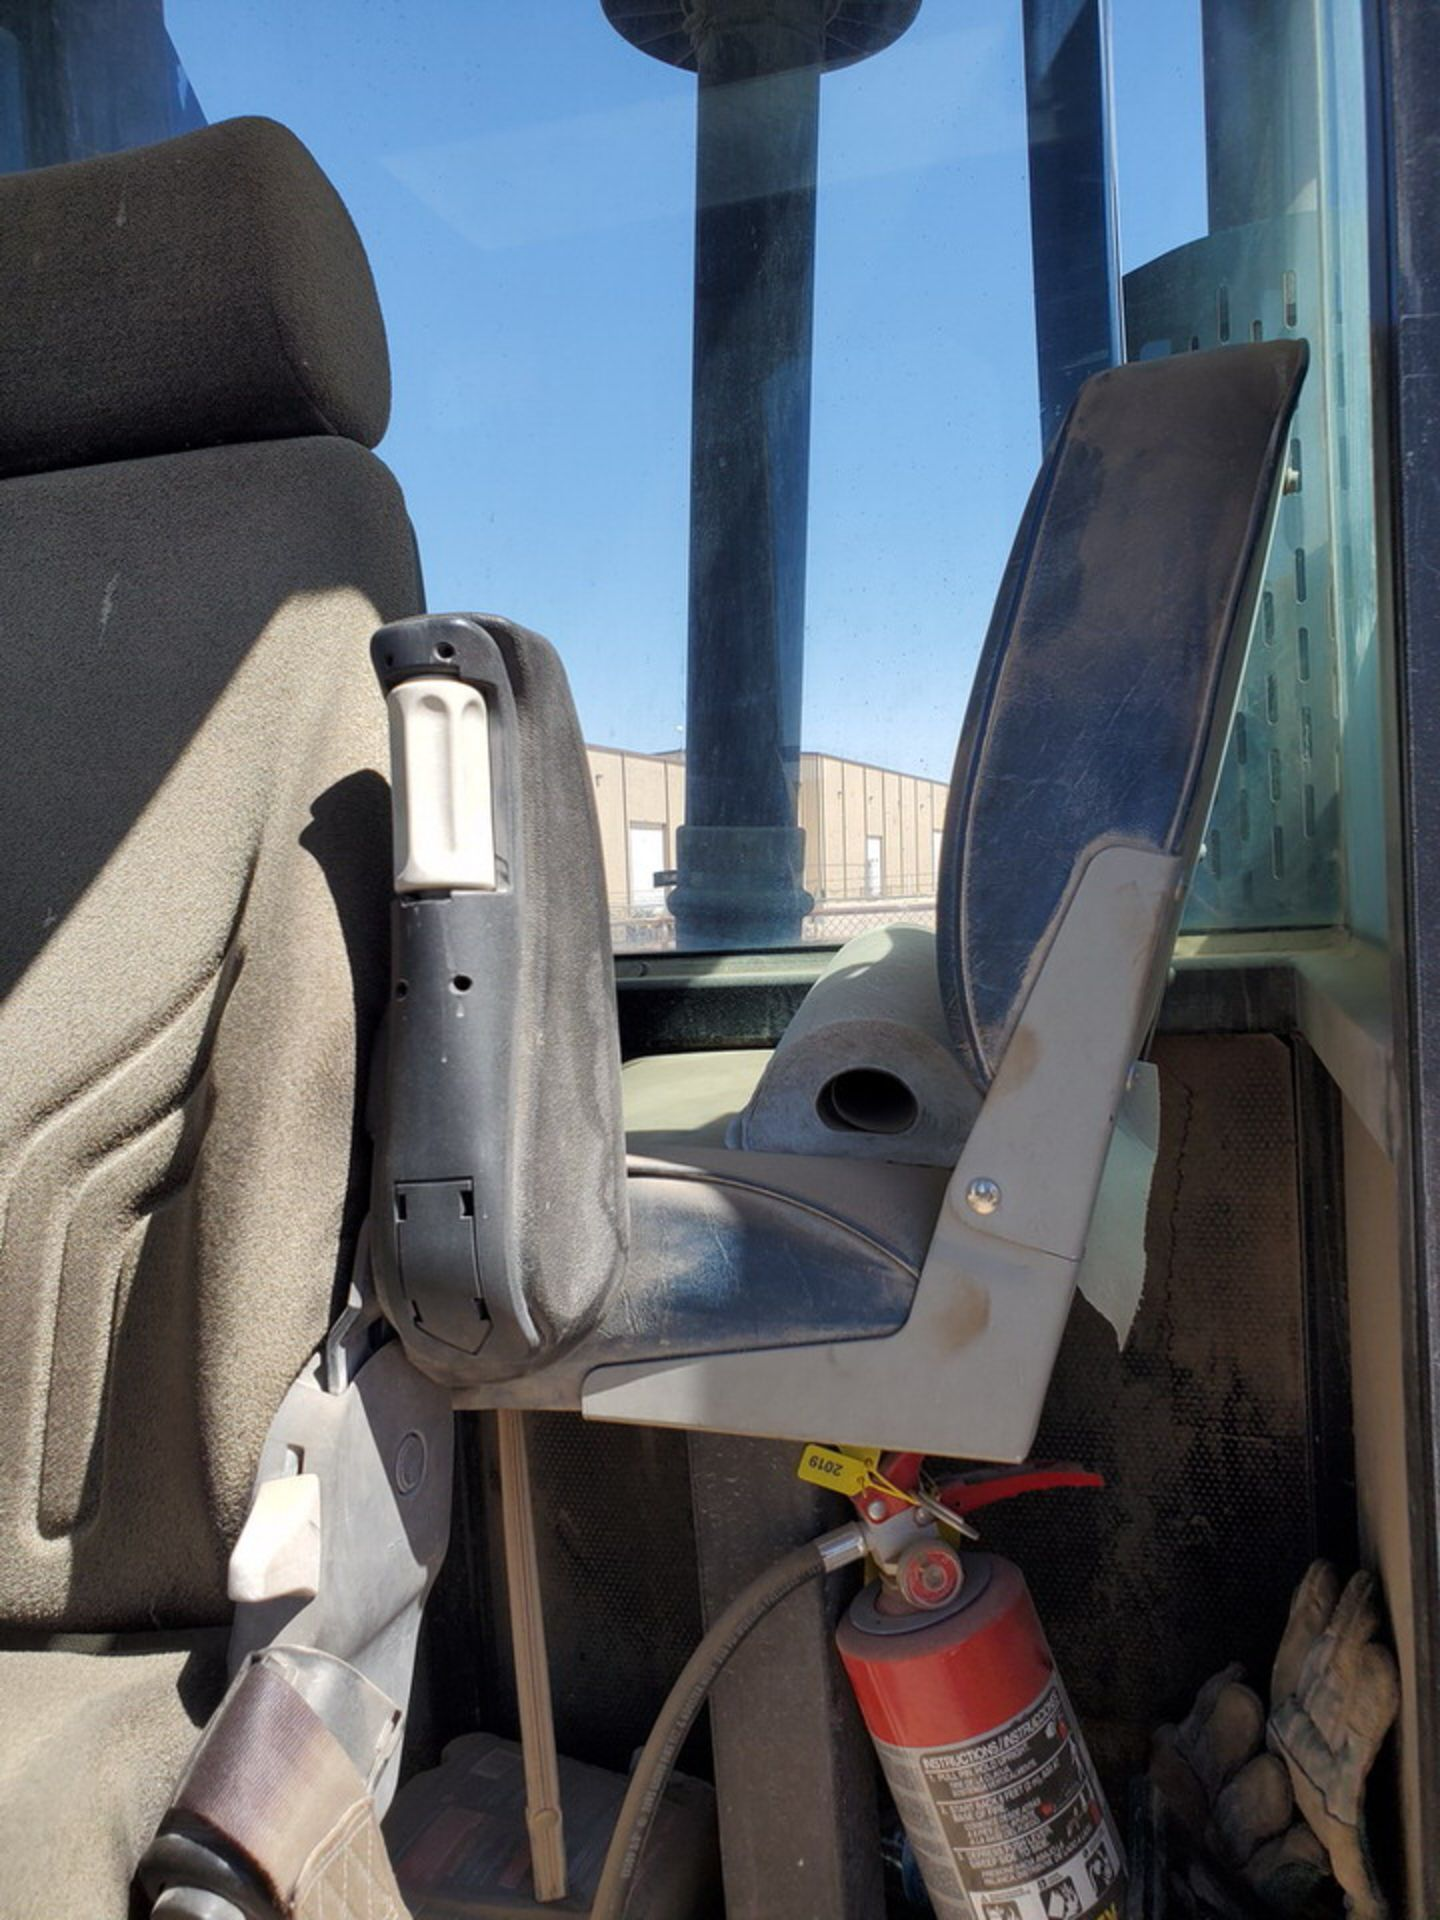 2012 Brute Lift BT40-48 Forklift 40H Cap., Engine Hrs: 3,389.3 - Image 15 of 17